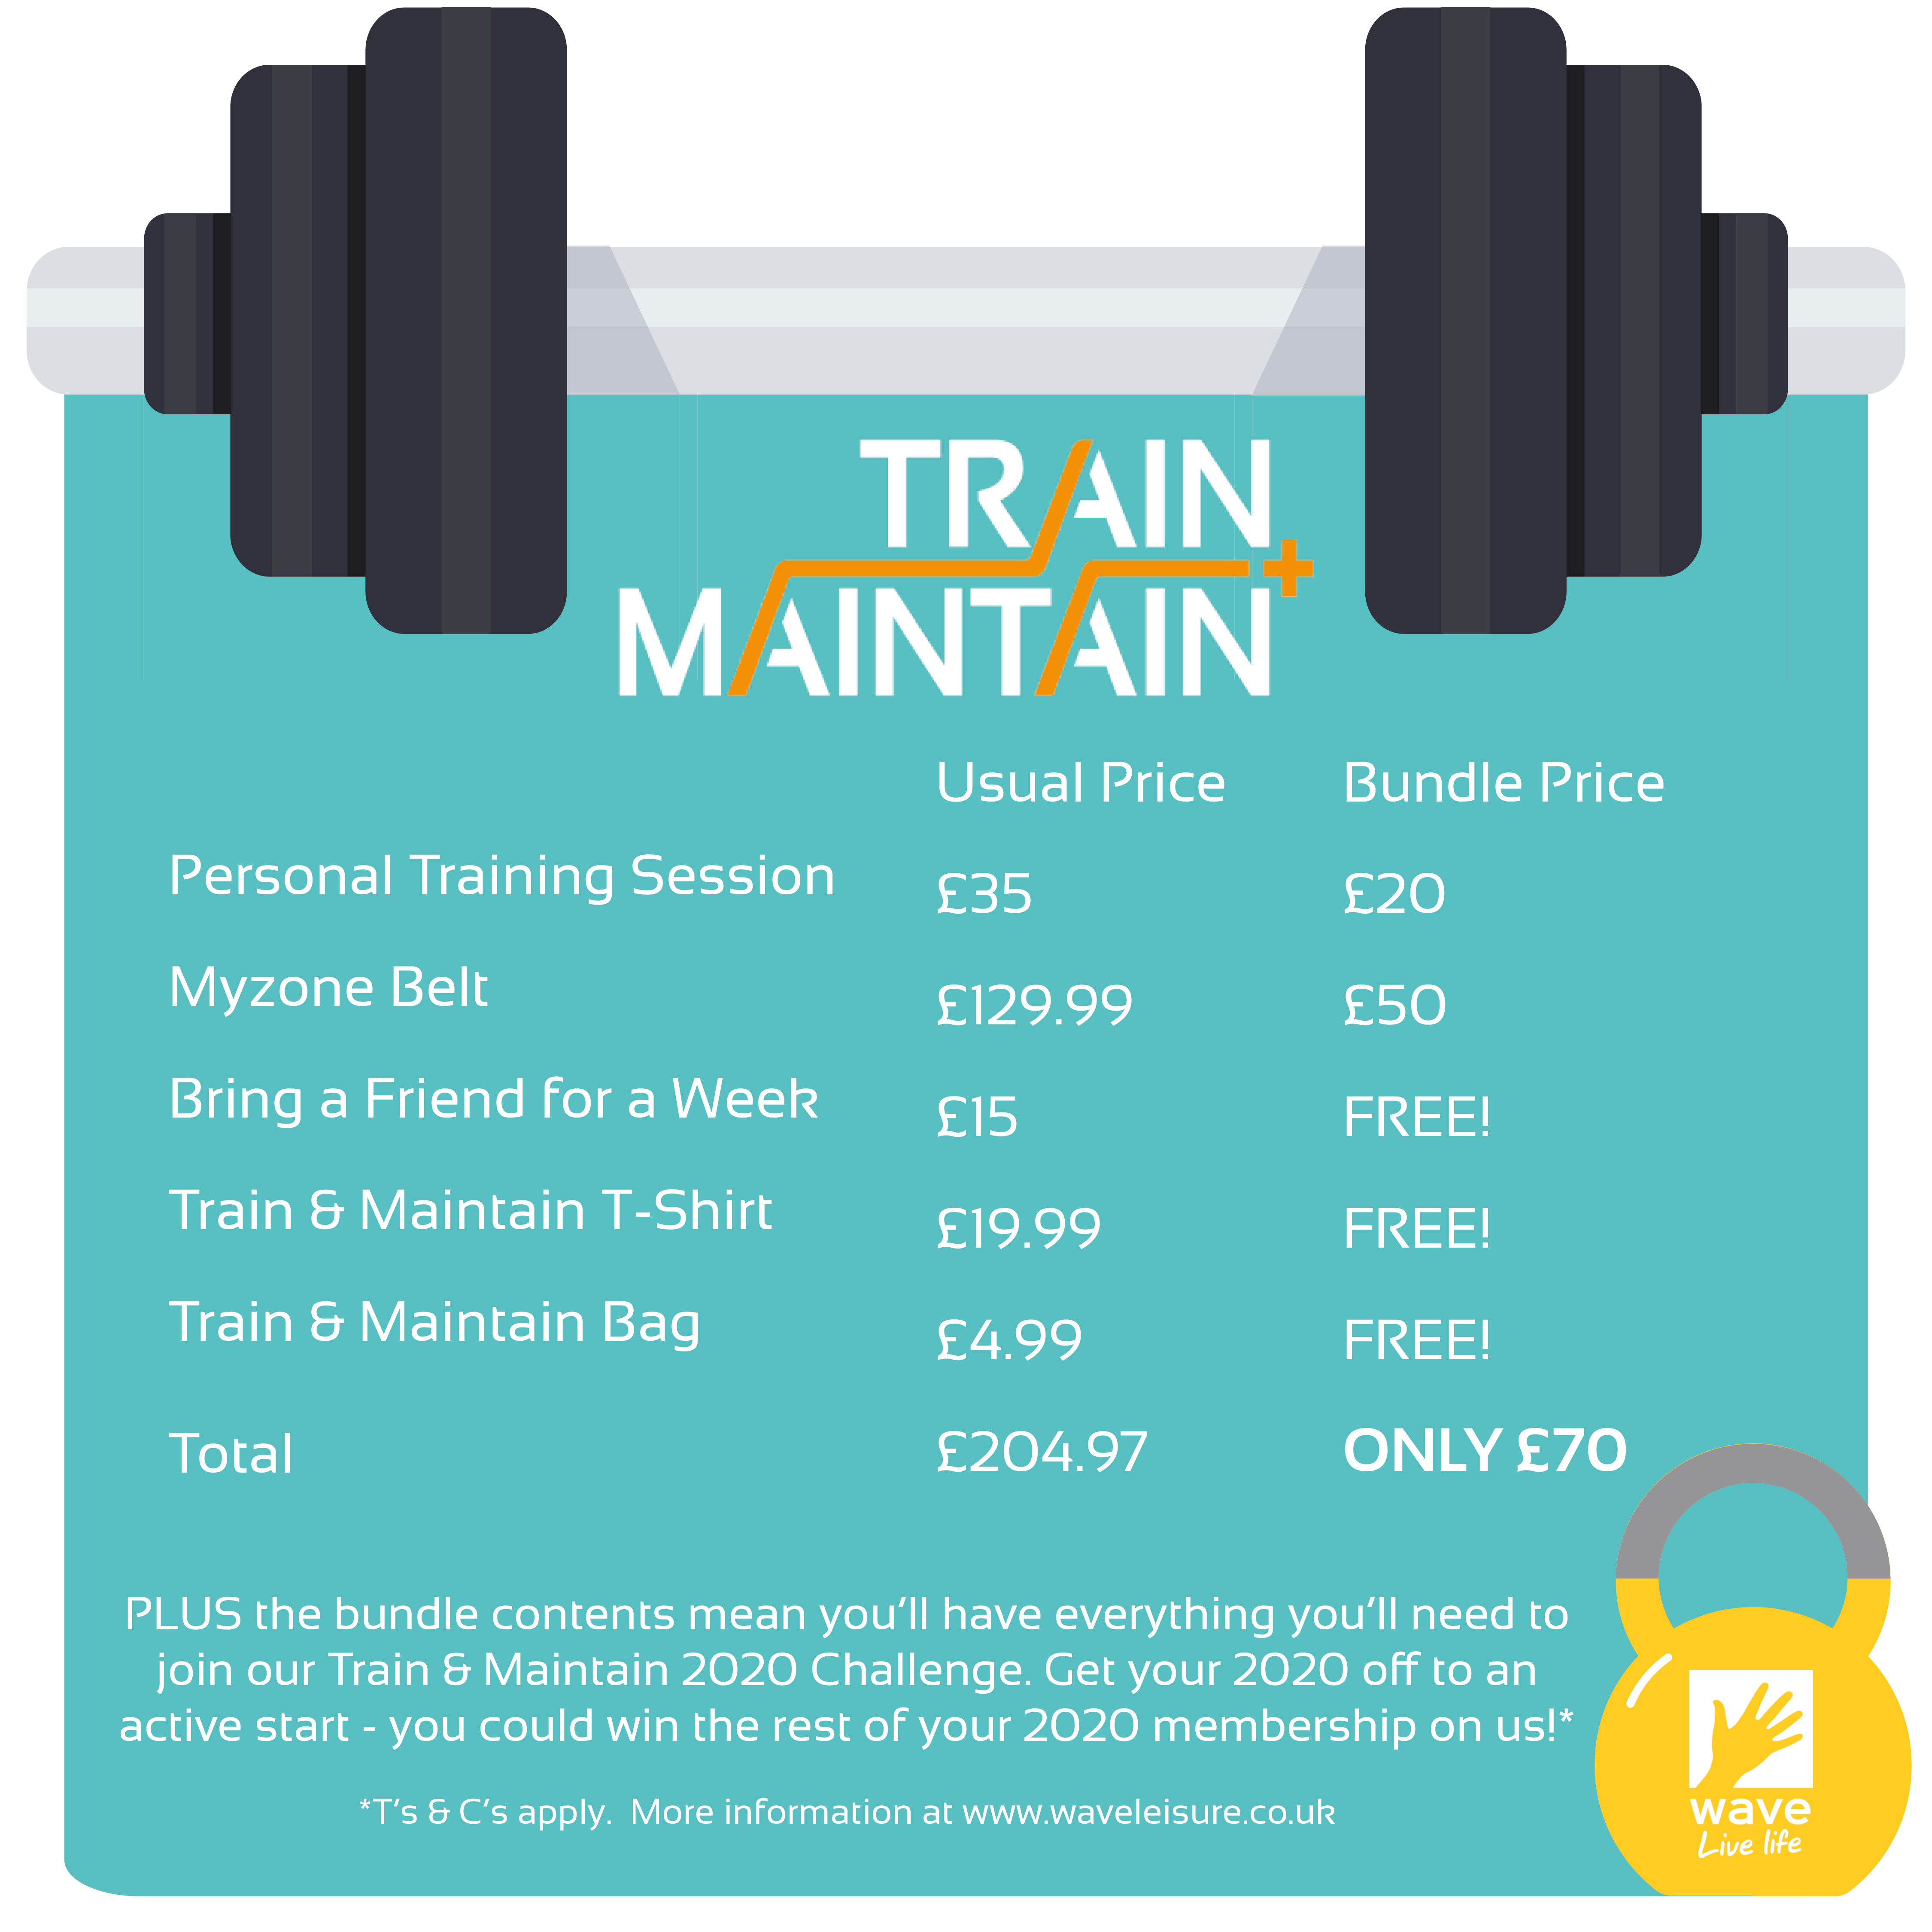 train and maintain bundle package